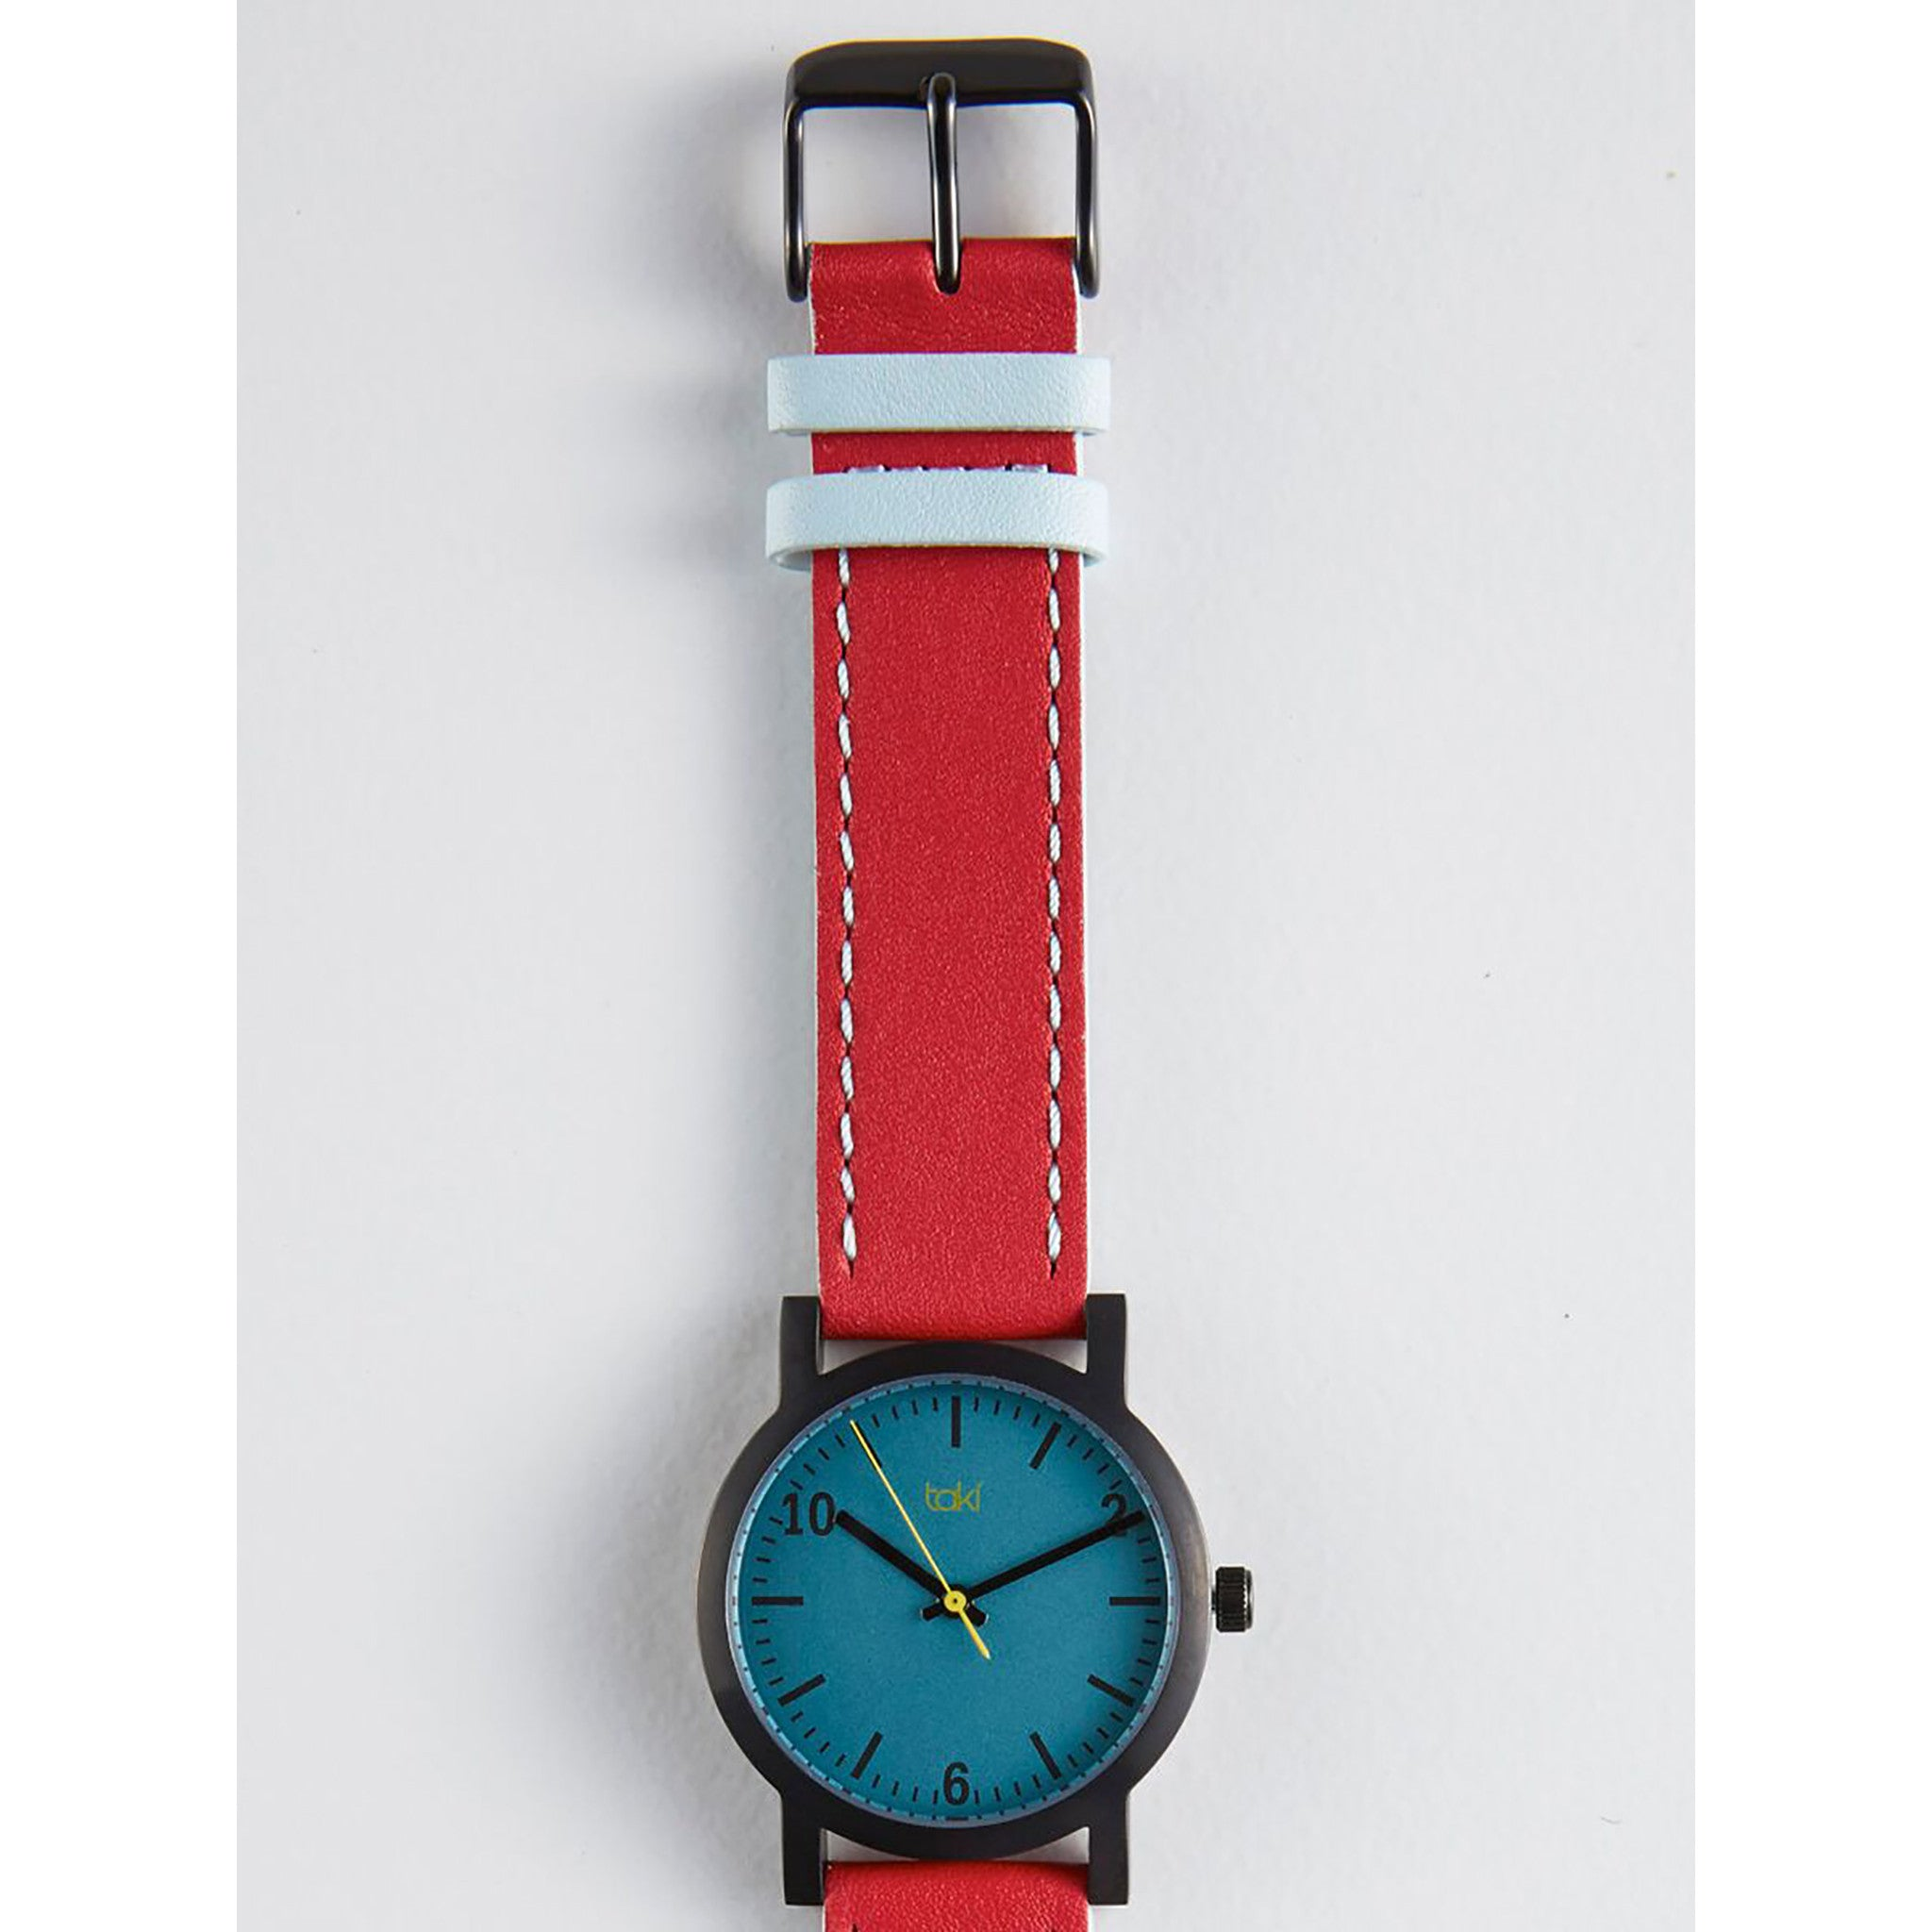 and mosaic retailers anaii blue watches wholesalers uk london designer watch f mila